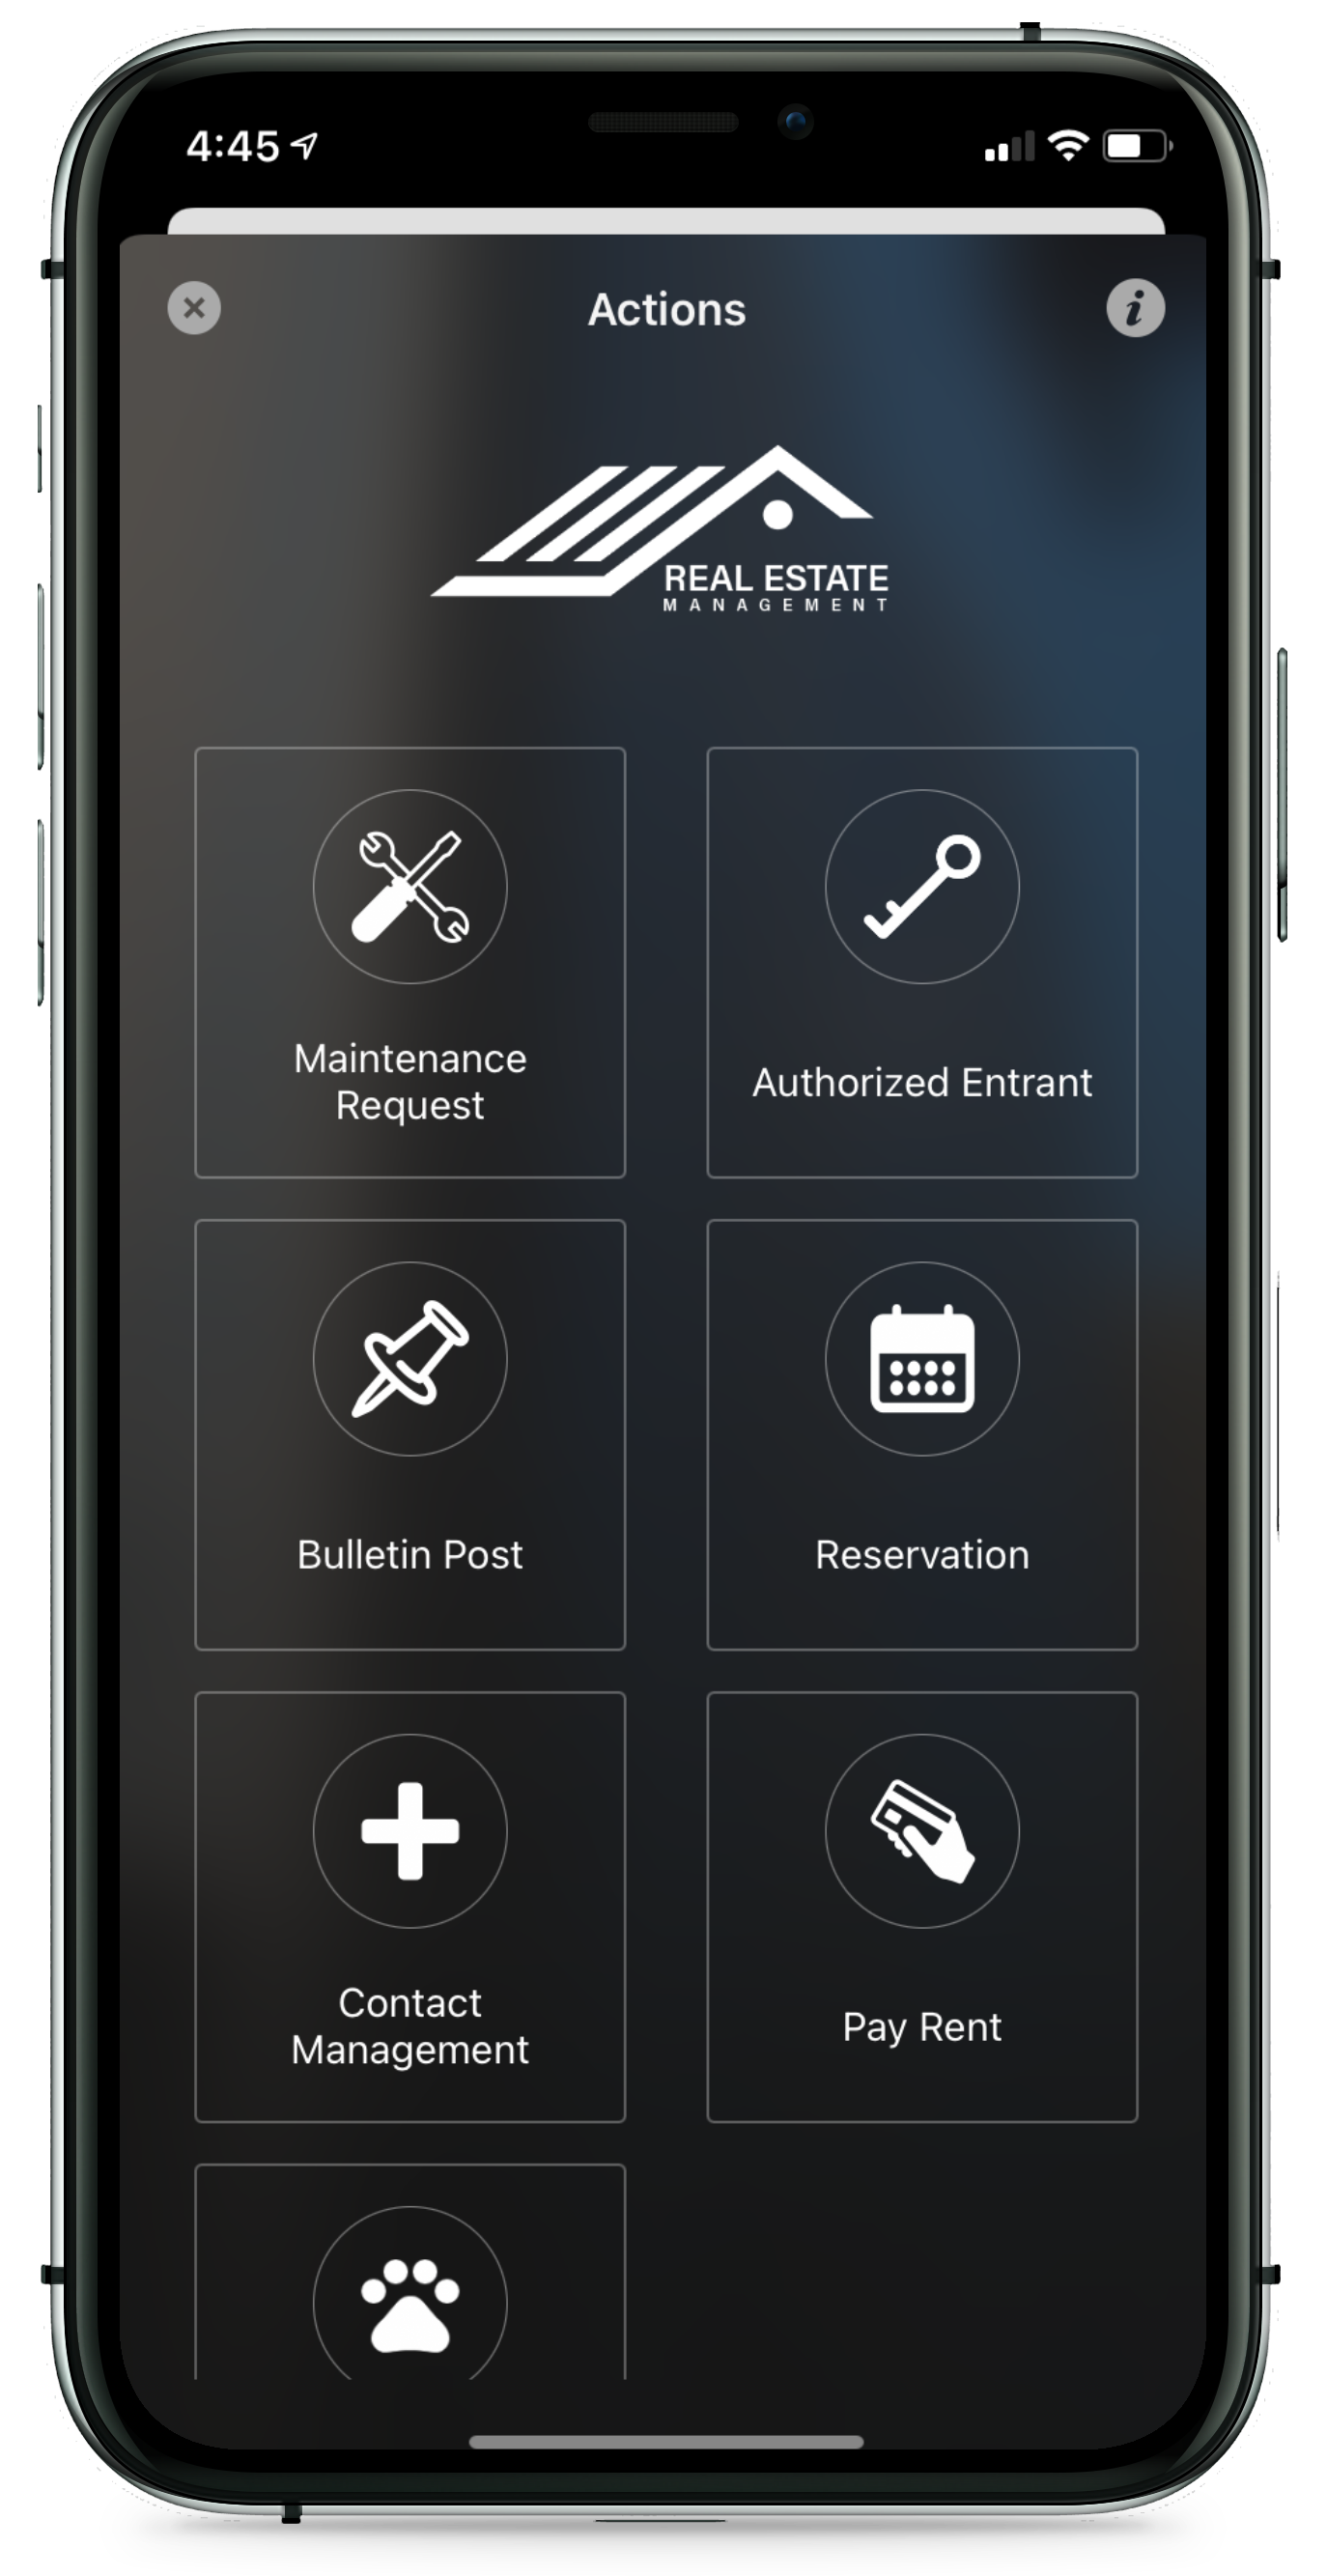 Zego Software - The mobile-first resident experience Zego Mobile Doorman app is a comprehensive solution for communication, payments, maintenance, packages, and other pressing needs